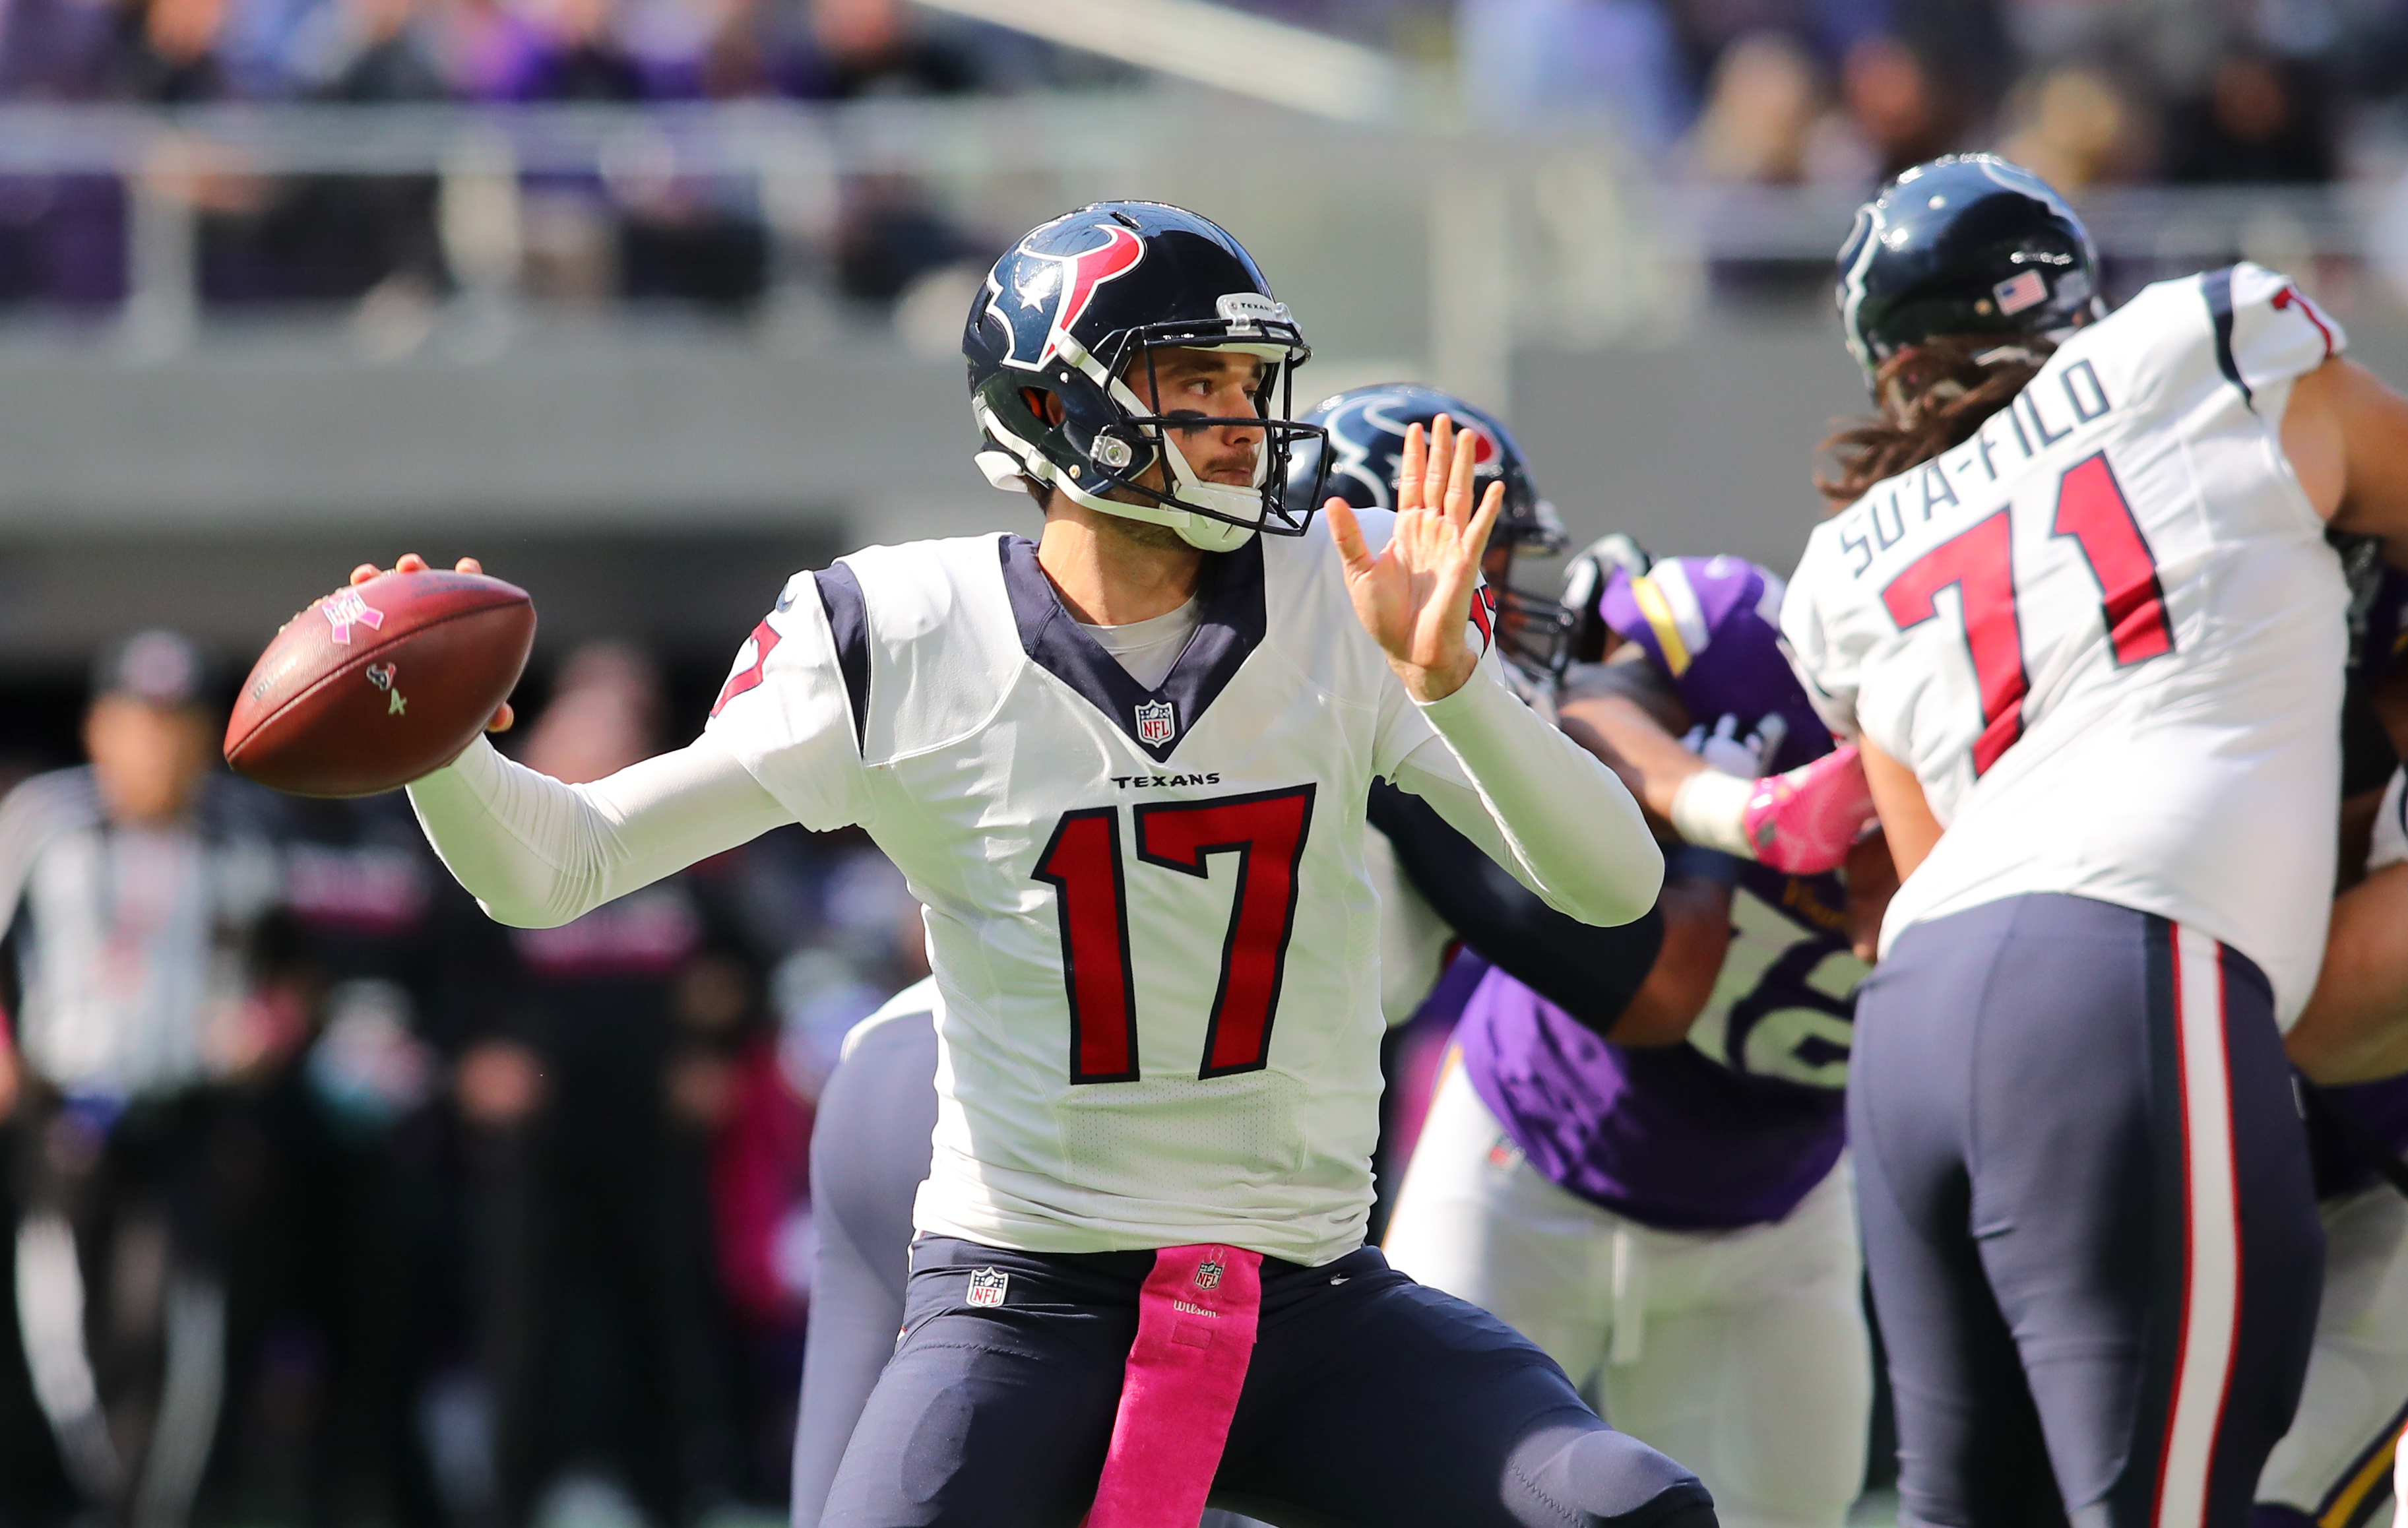 Quarterback Brock Osweiler #17 of the Houston Texans drops back to pass during the second quarter of the game against the Minnesota Vikings on October 9, 2016 at US Bank Stadium in Minneapolis. (credit: Adam Bettcher/Getty Images)